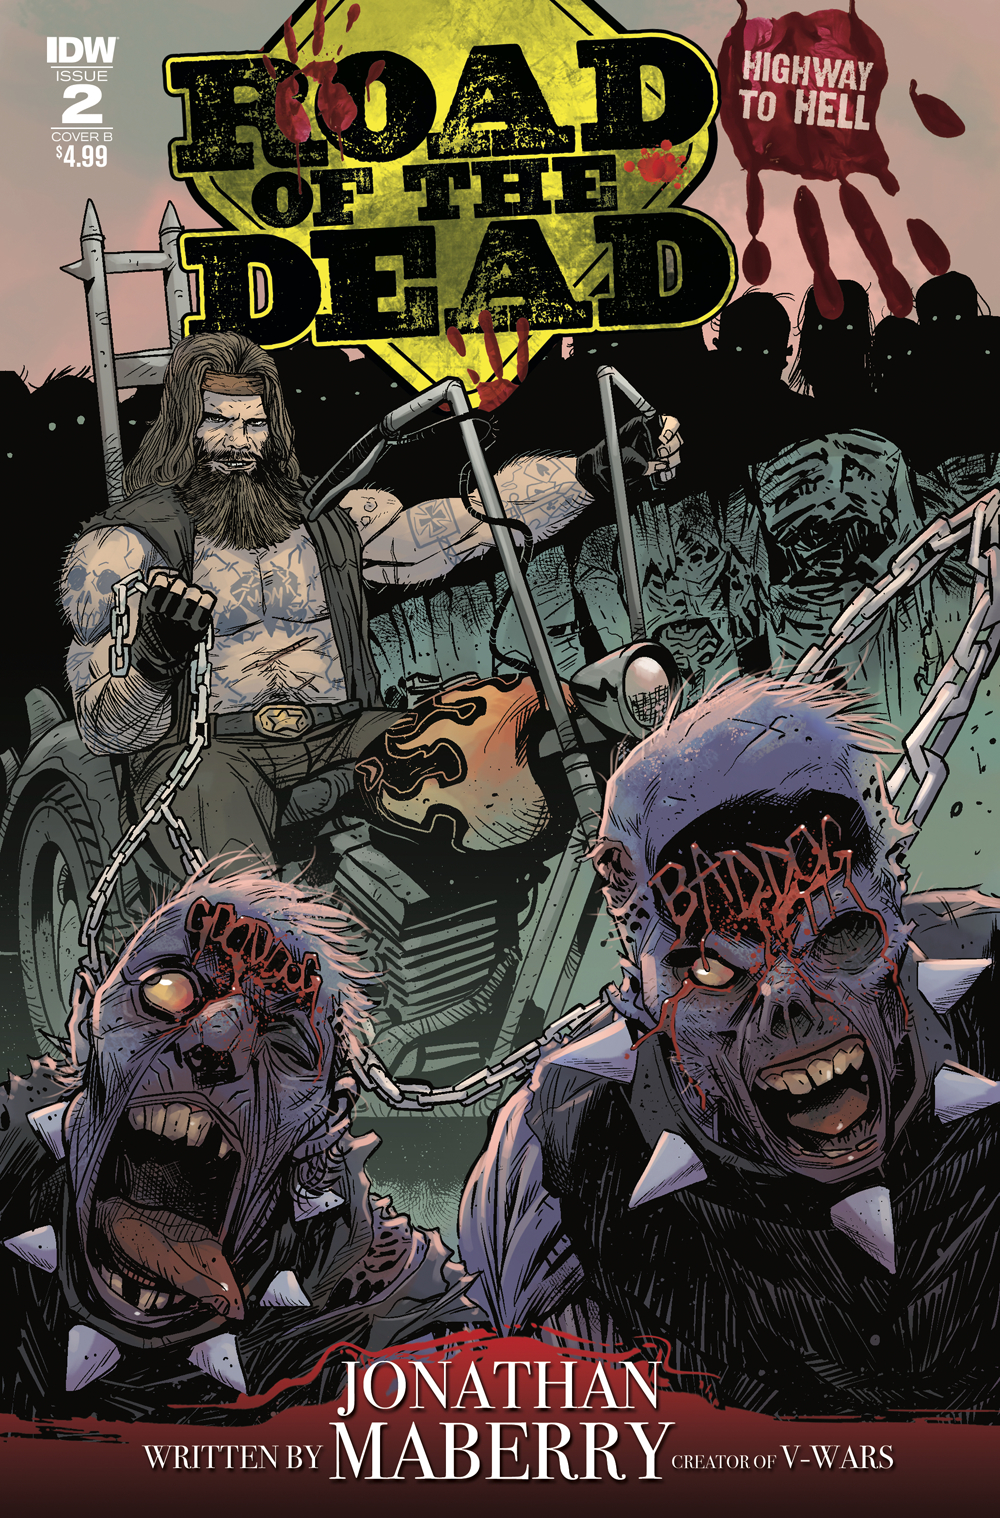 ROAD OF THE DEAD HIGHWAY TO HELL #2 CVR B MOSS